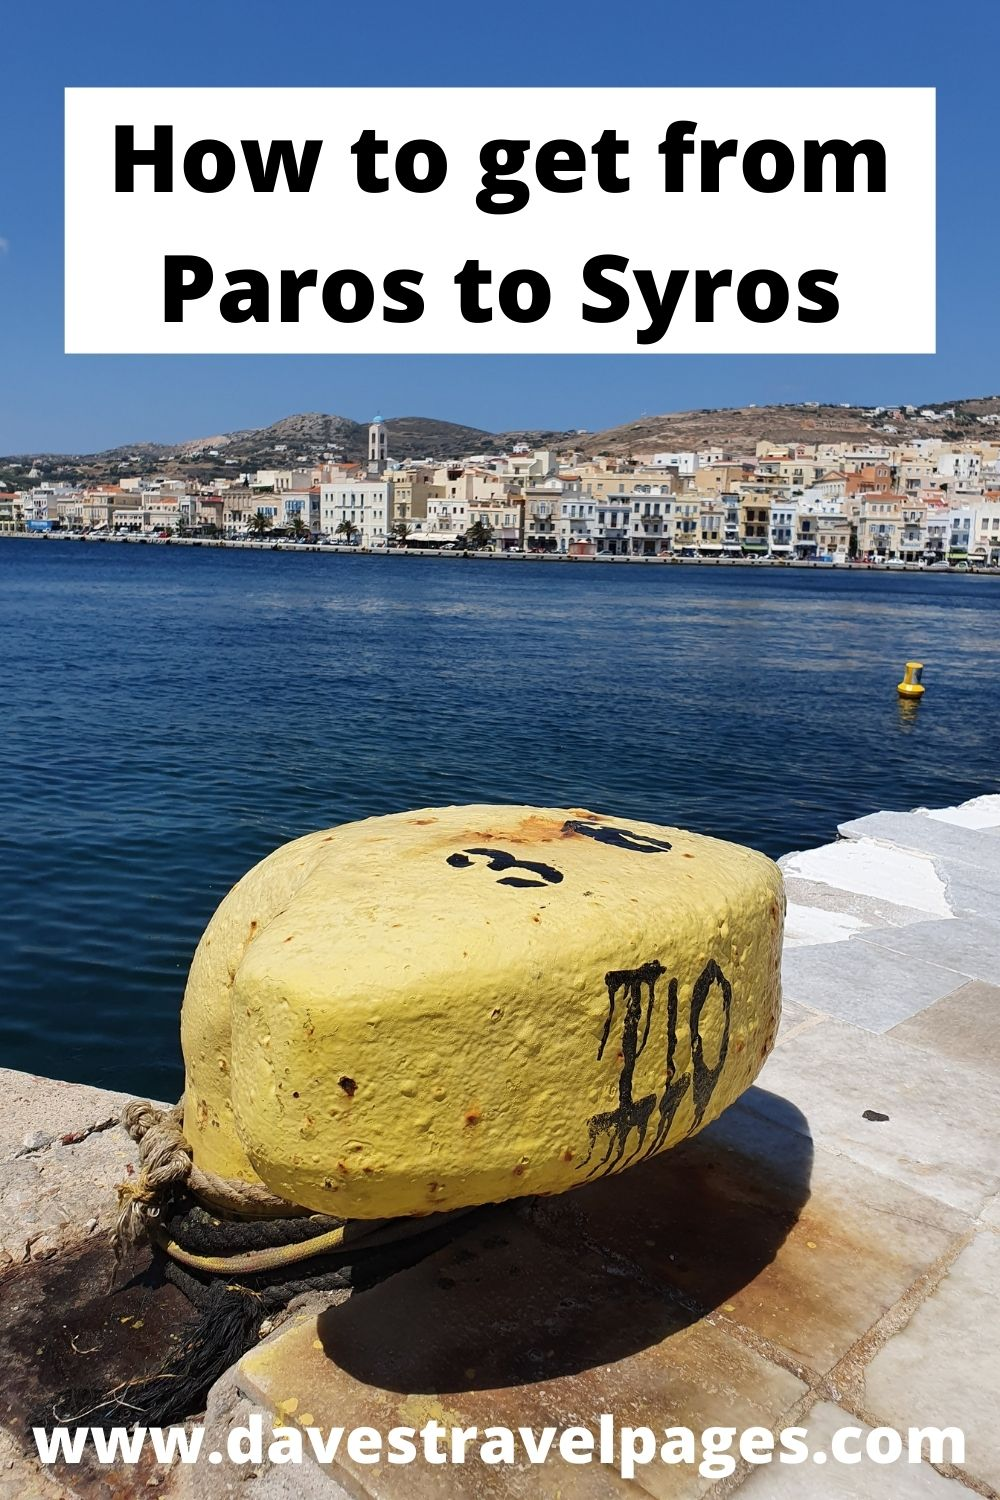 How to take the ferry from Paros to Syros in Greece